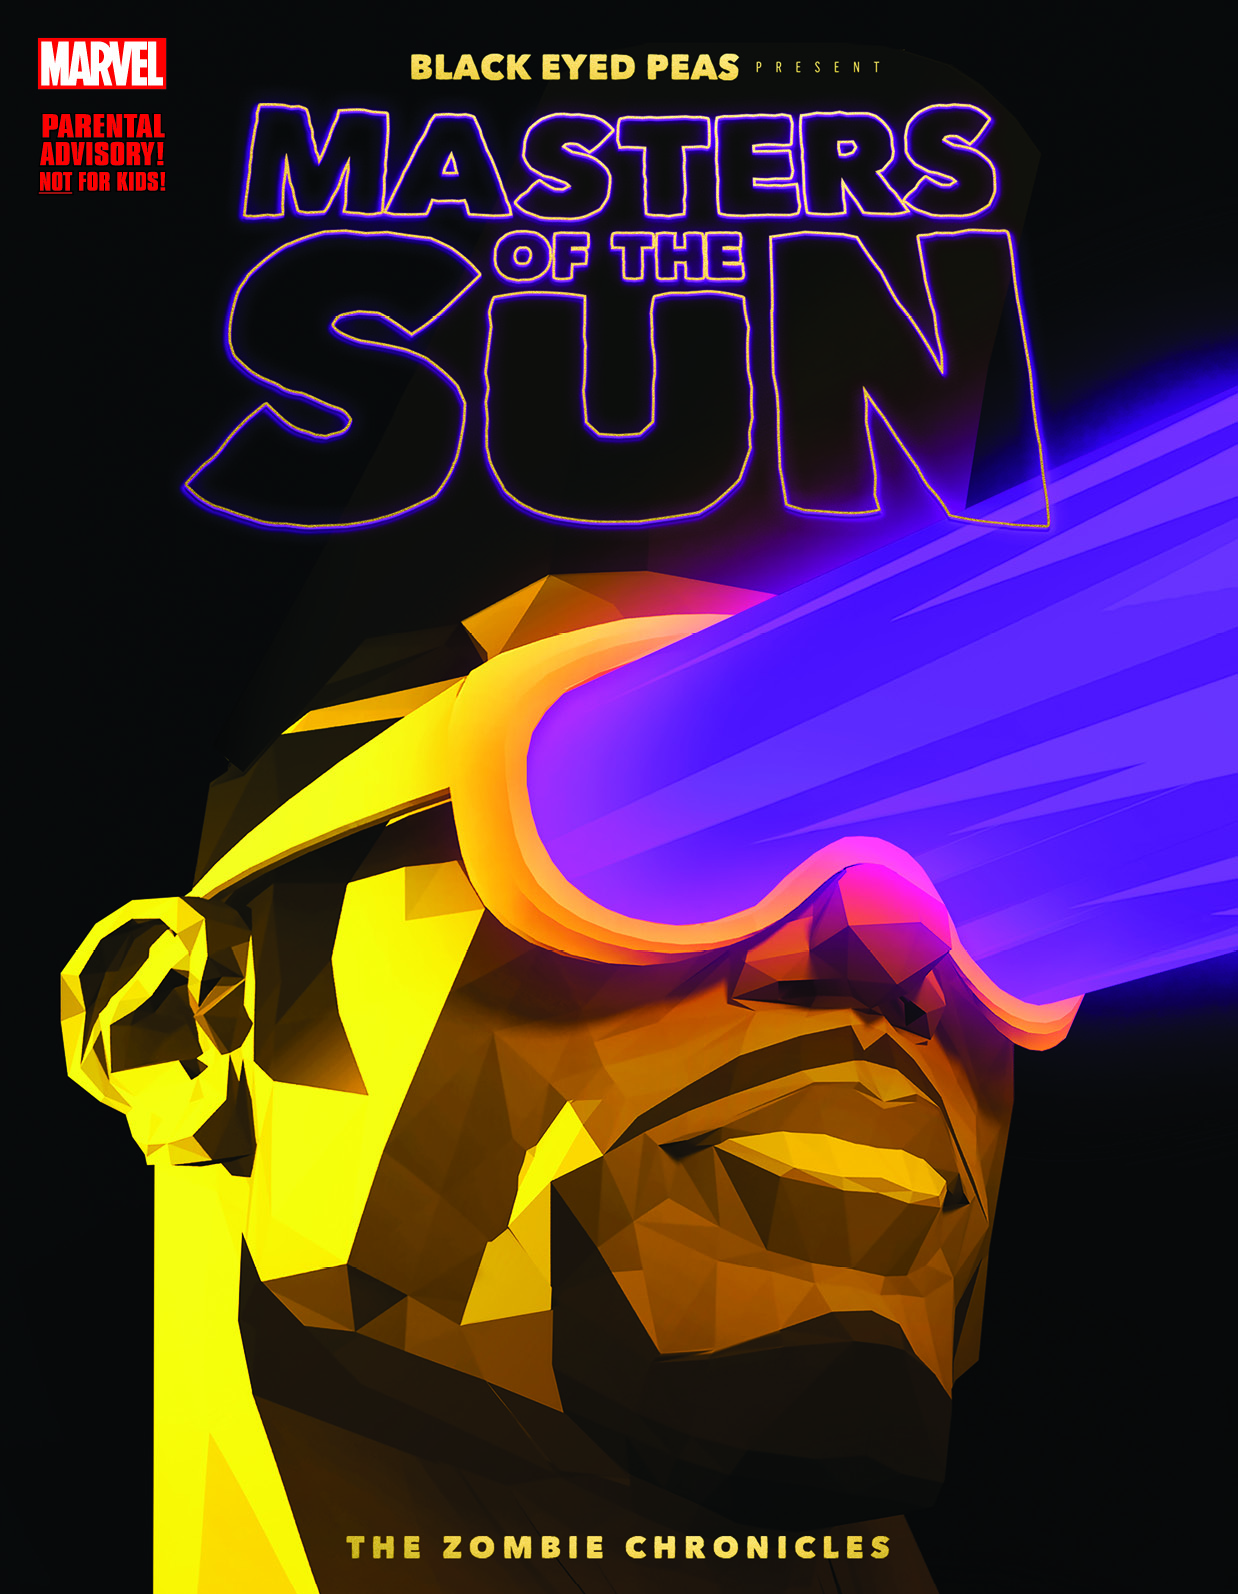 Black Eyed Peas Present: Masters of the Sun - The Zombie Chronicles (Trade Paperback)